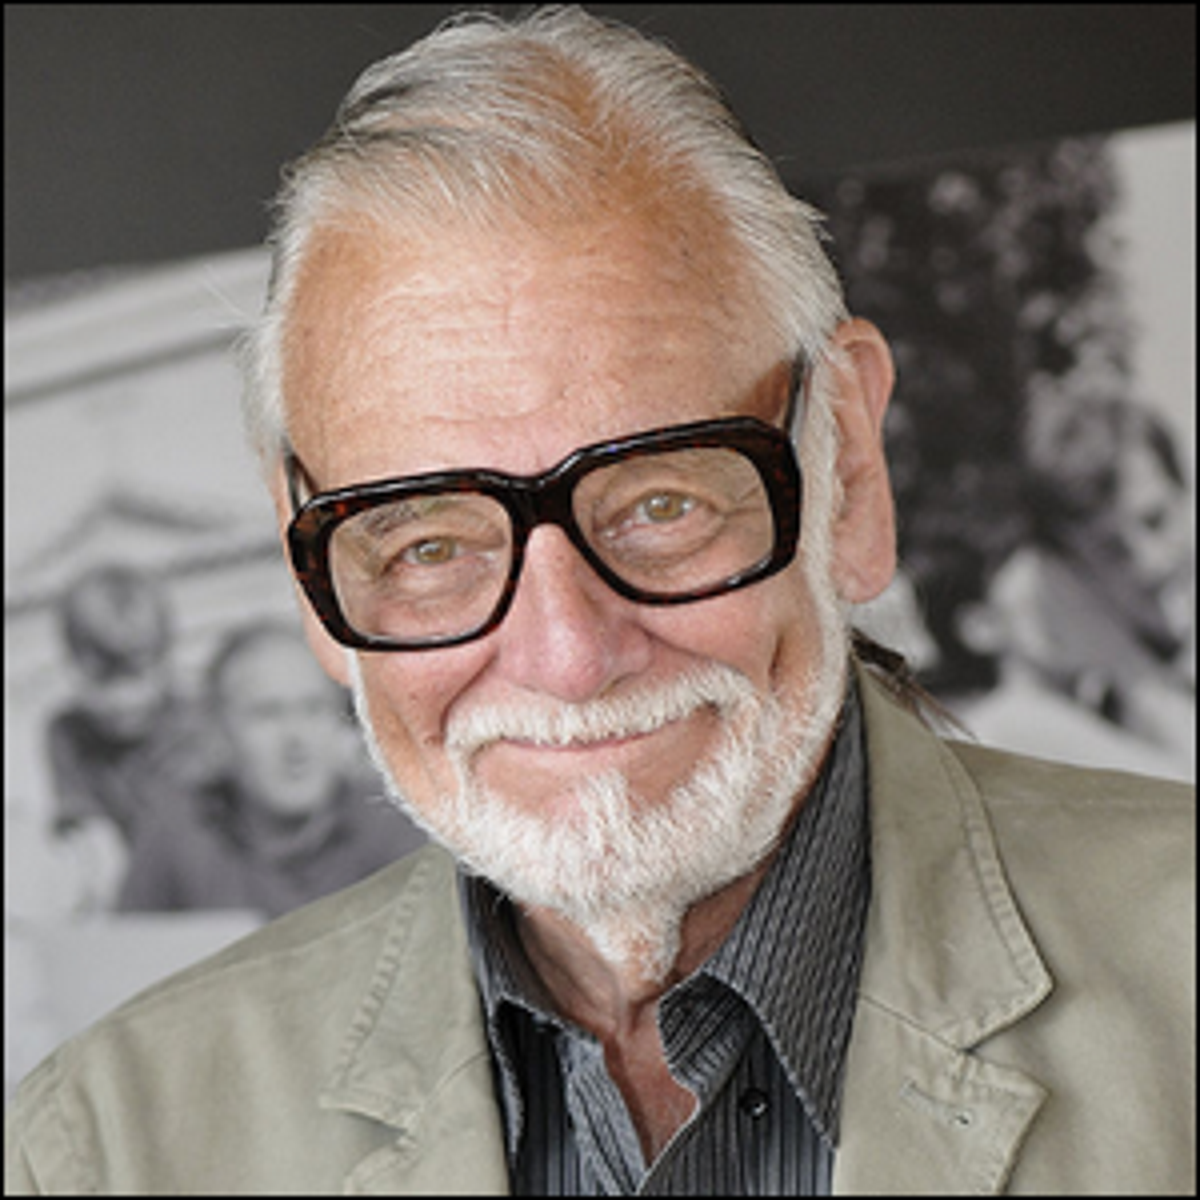 Director George Romero at a French film festival in 2009.